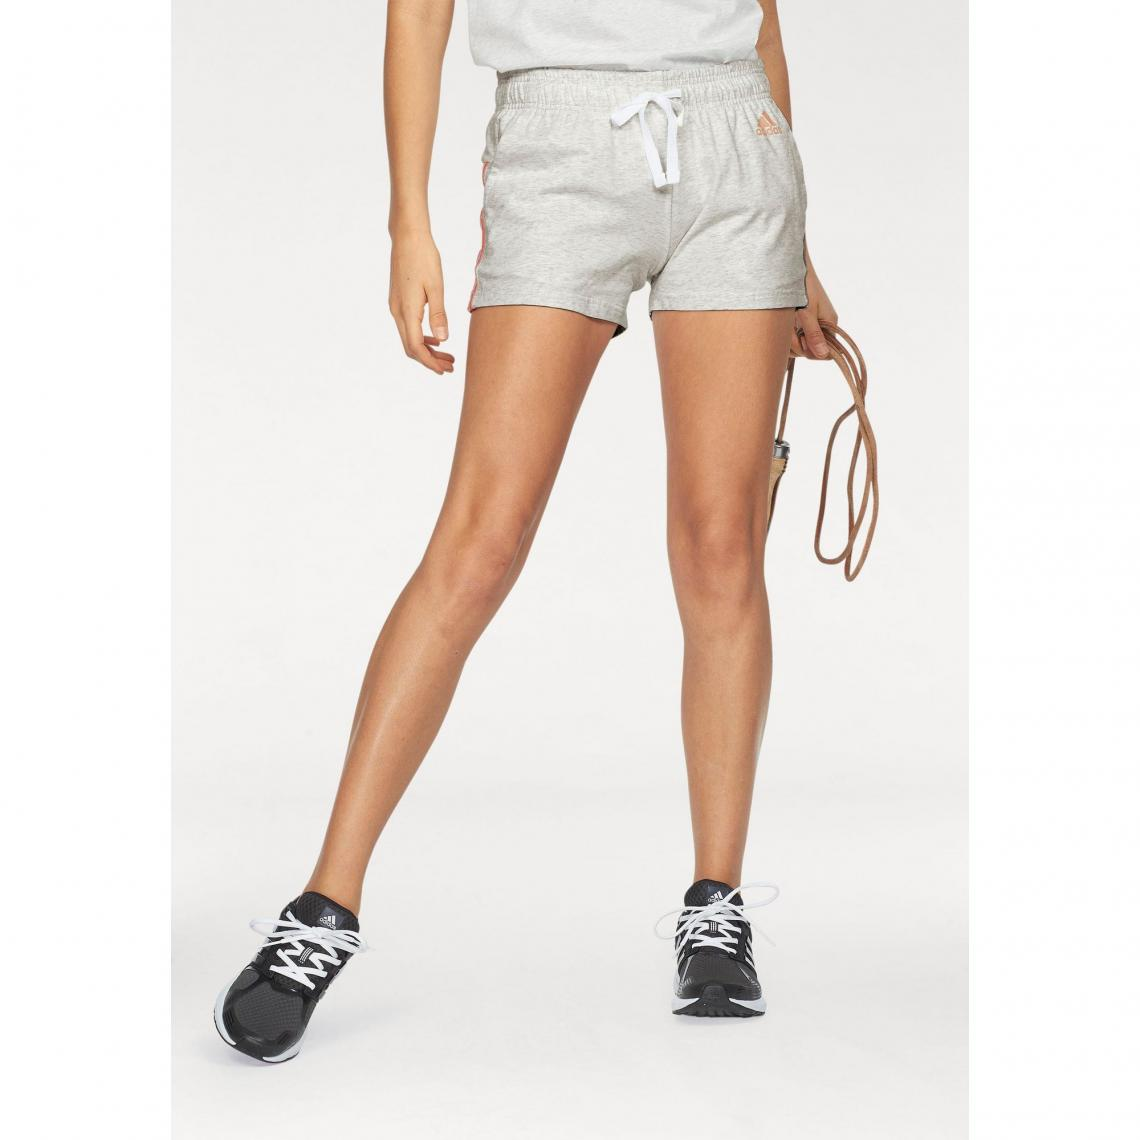 92a2d5db03 Short court femme Essentials 3 Stripes Short adidas Performance Adidas  Performance Femme